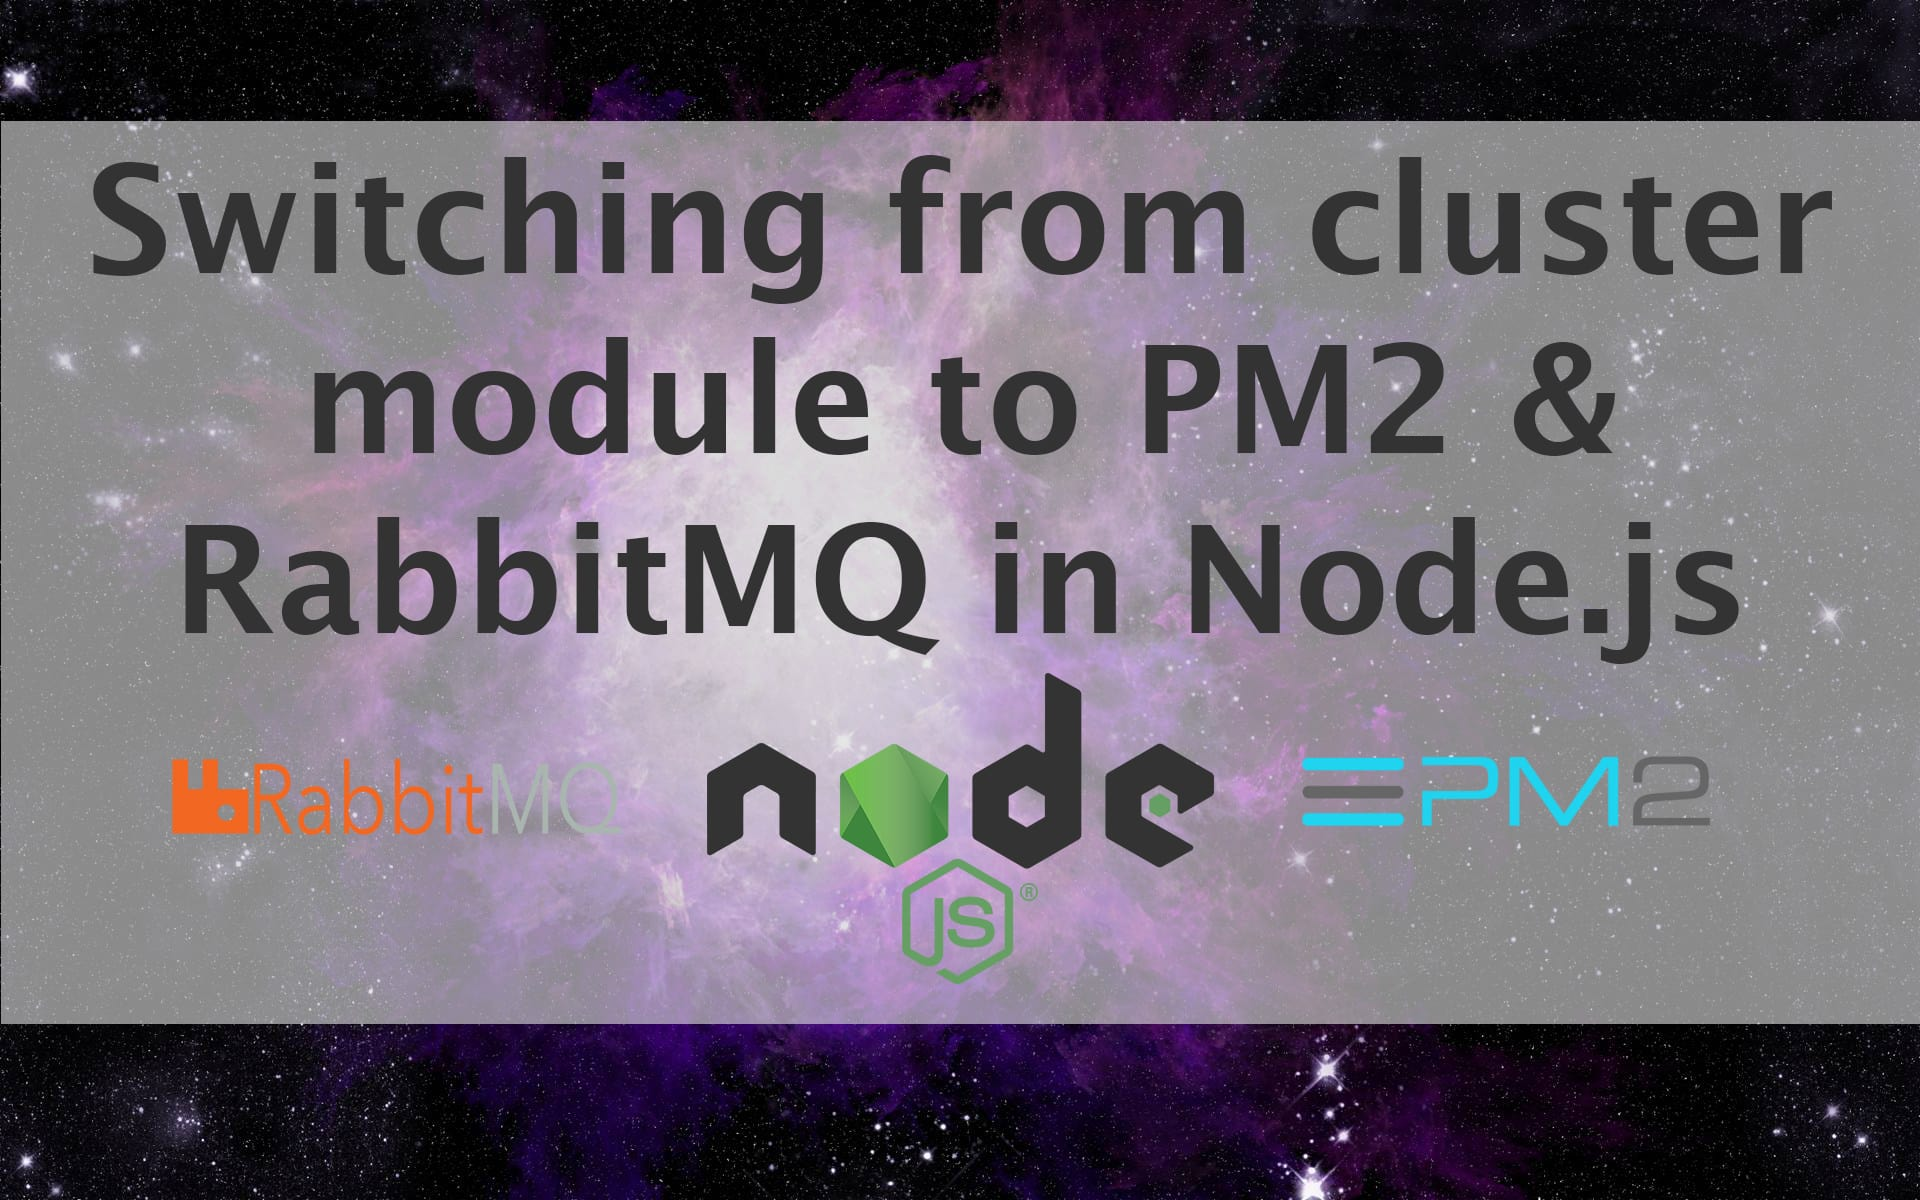 Switching from cluster module to PM2 & RabbitMQ in Node js ― Scotch io